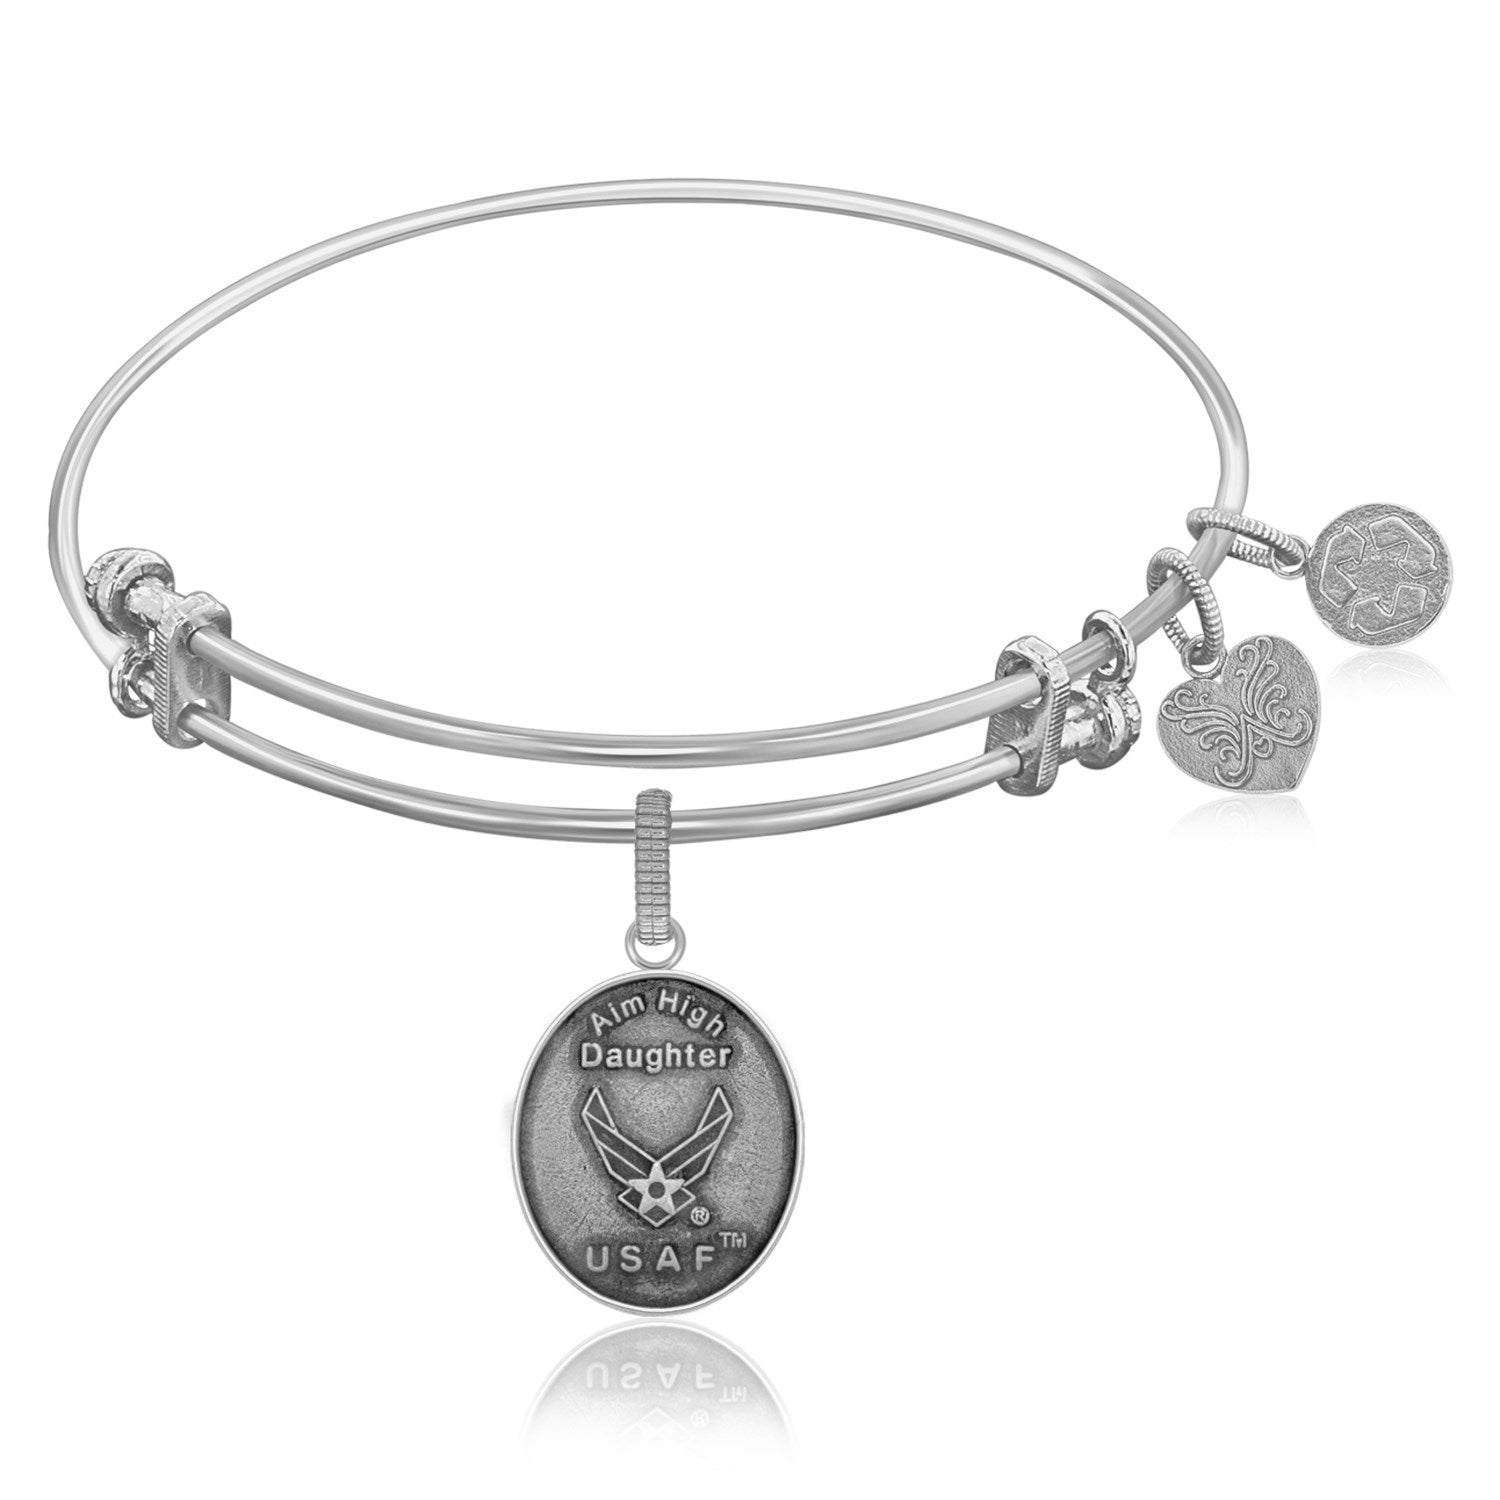 Expandable Bangle in White Tone Brass with USAF Aim High Daughter Symbol